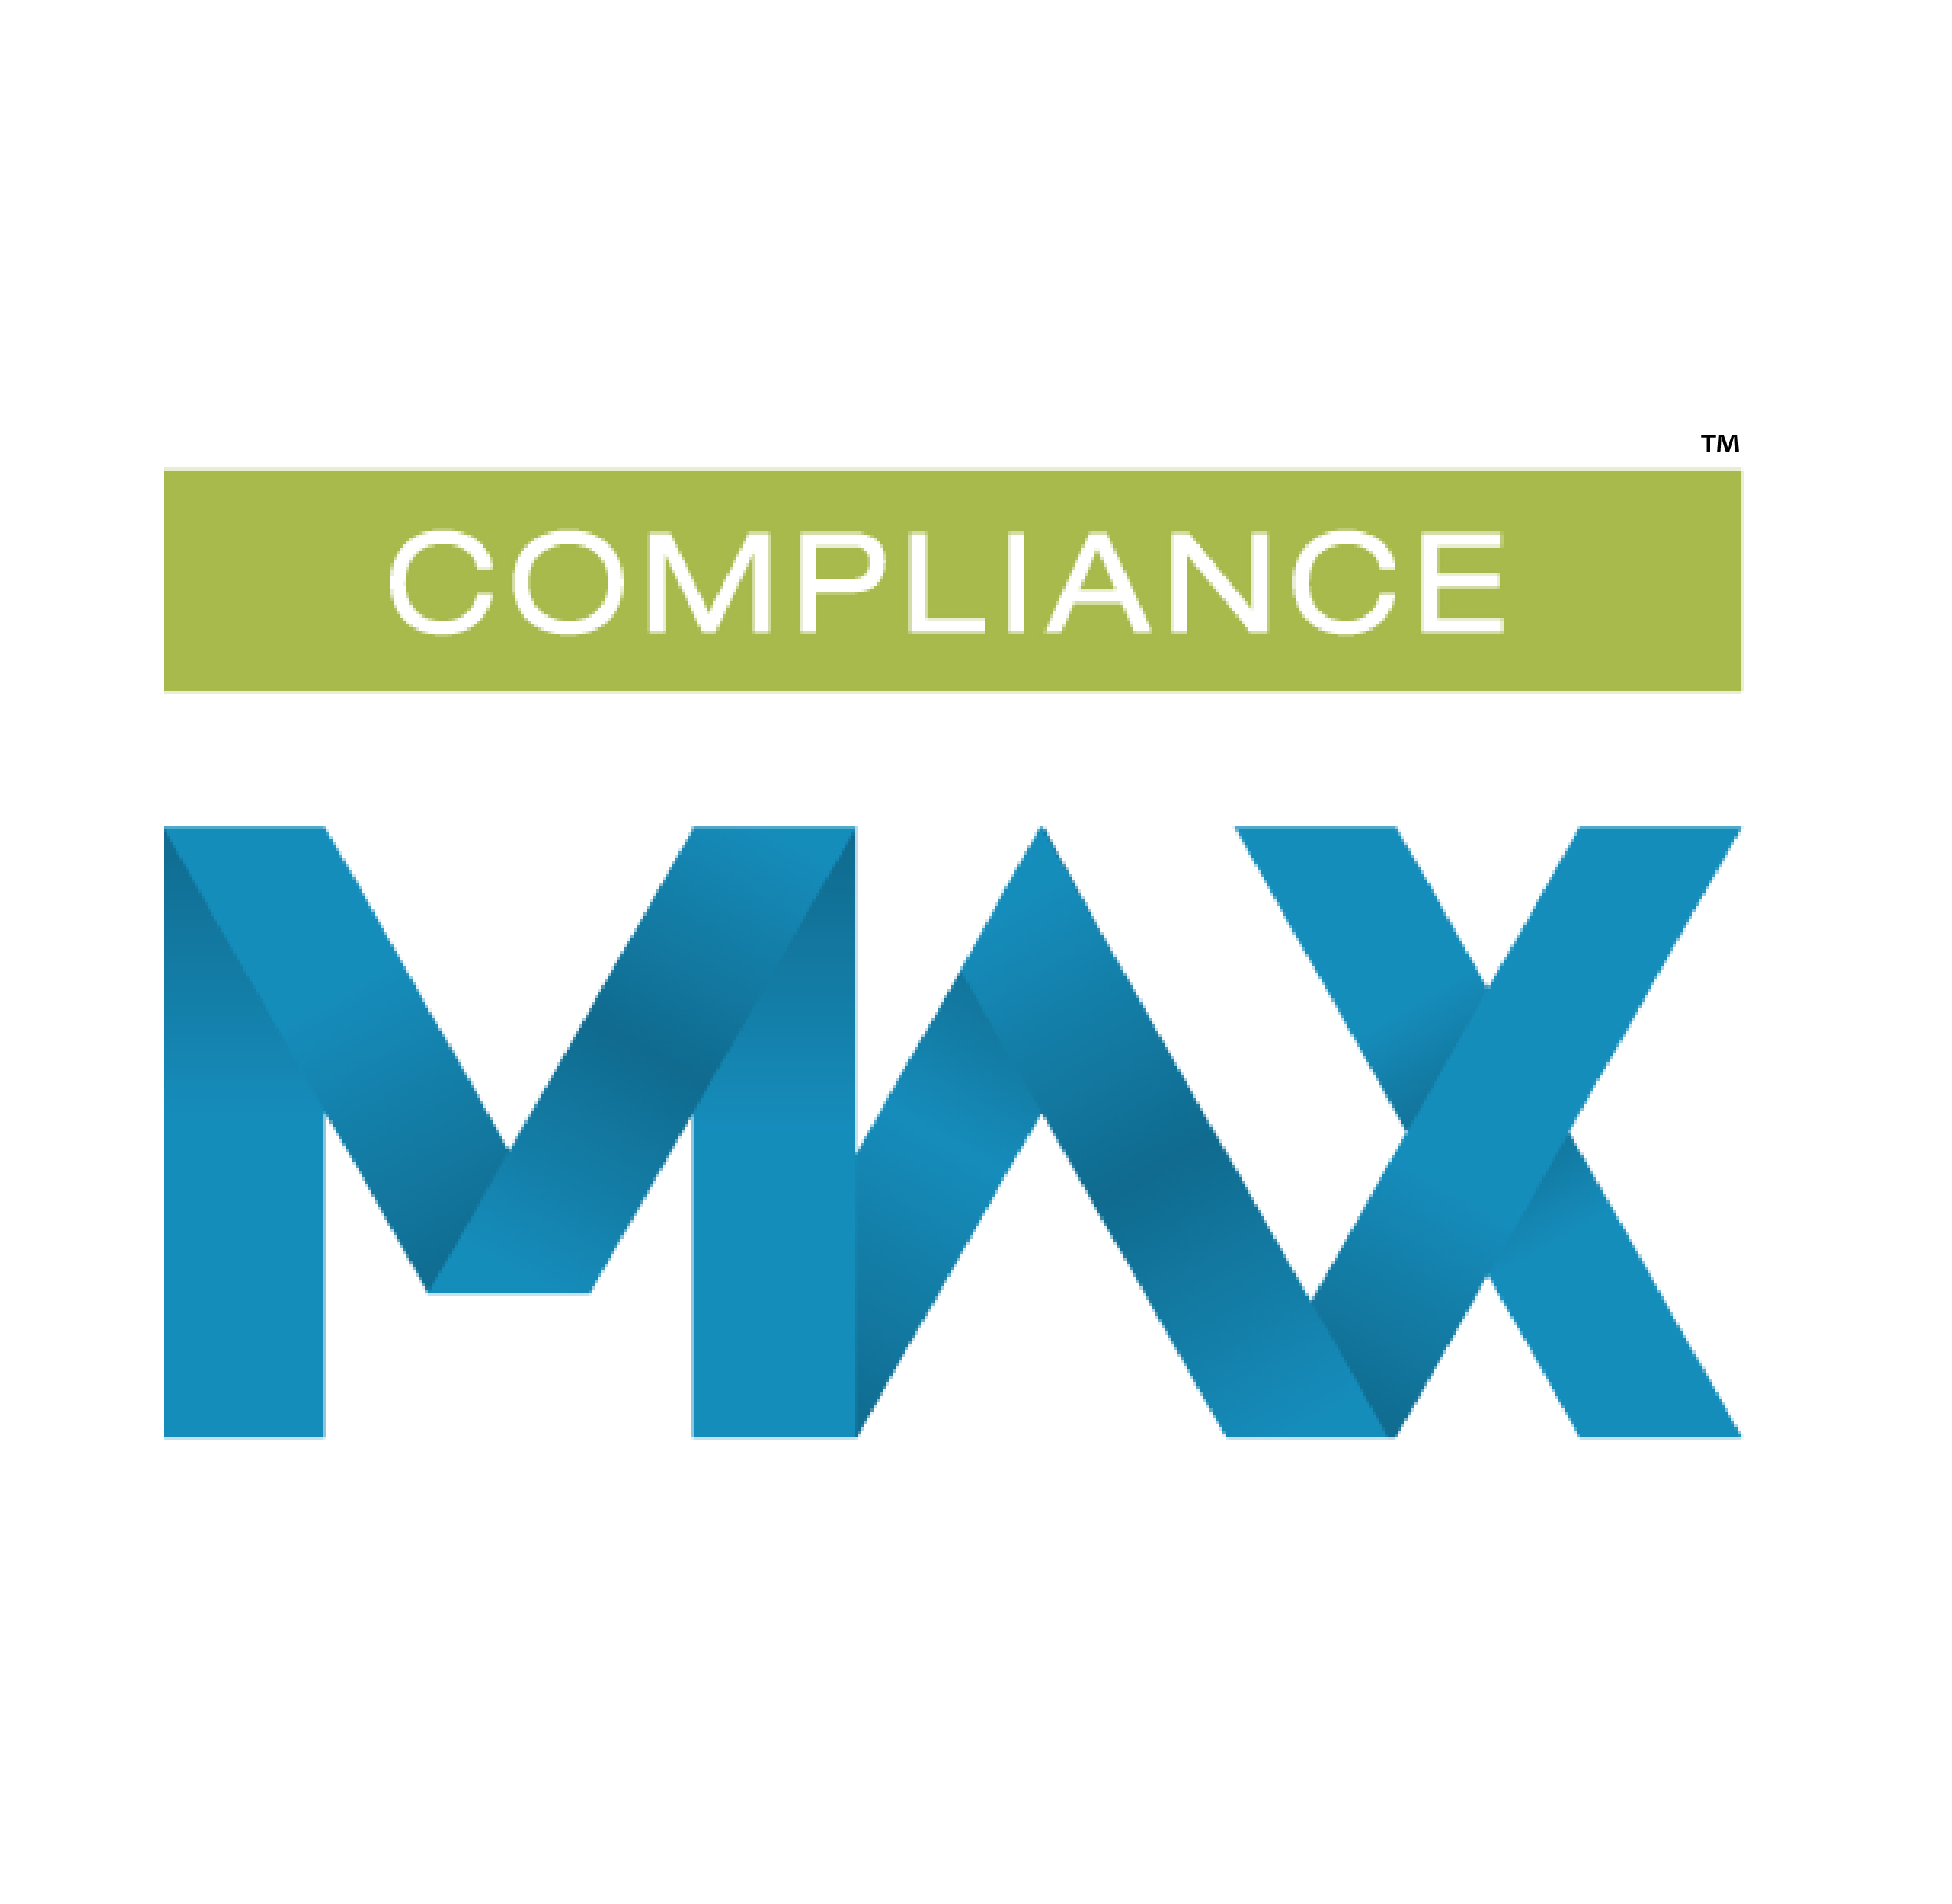 MAX MODEL LOGOS COMPLIANCE tm